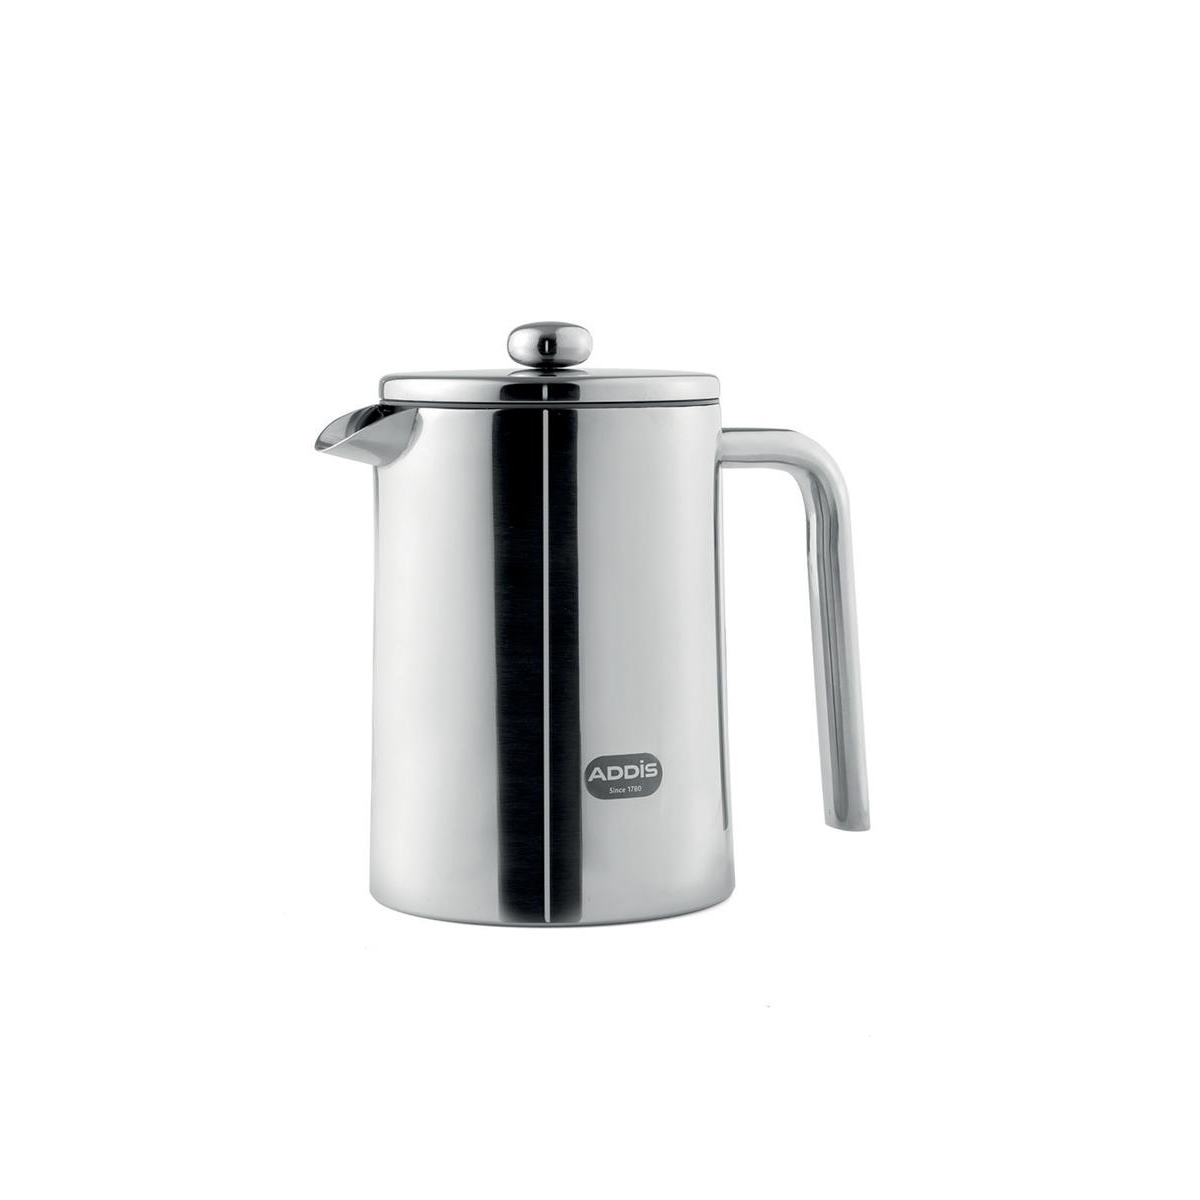 Addis Commercial Cafetiere 1.2 Litre Stainless Steel Ref 517471